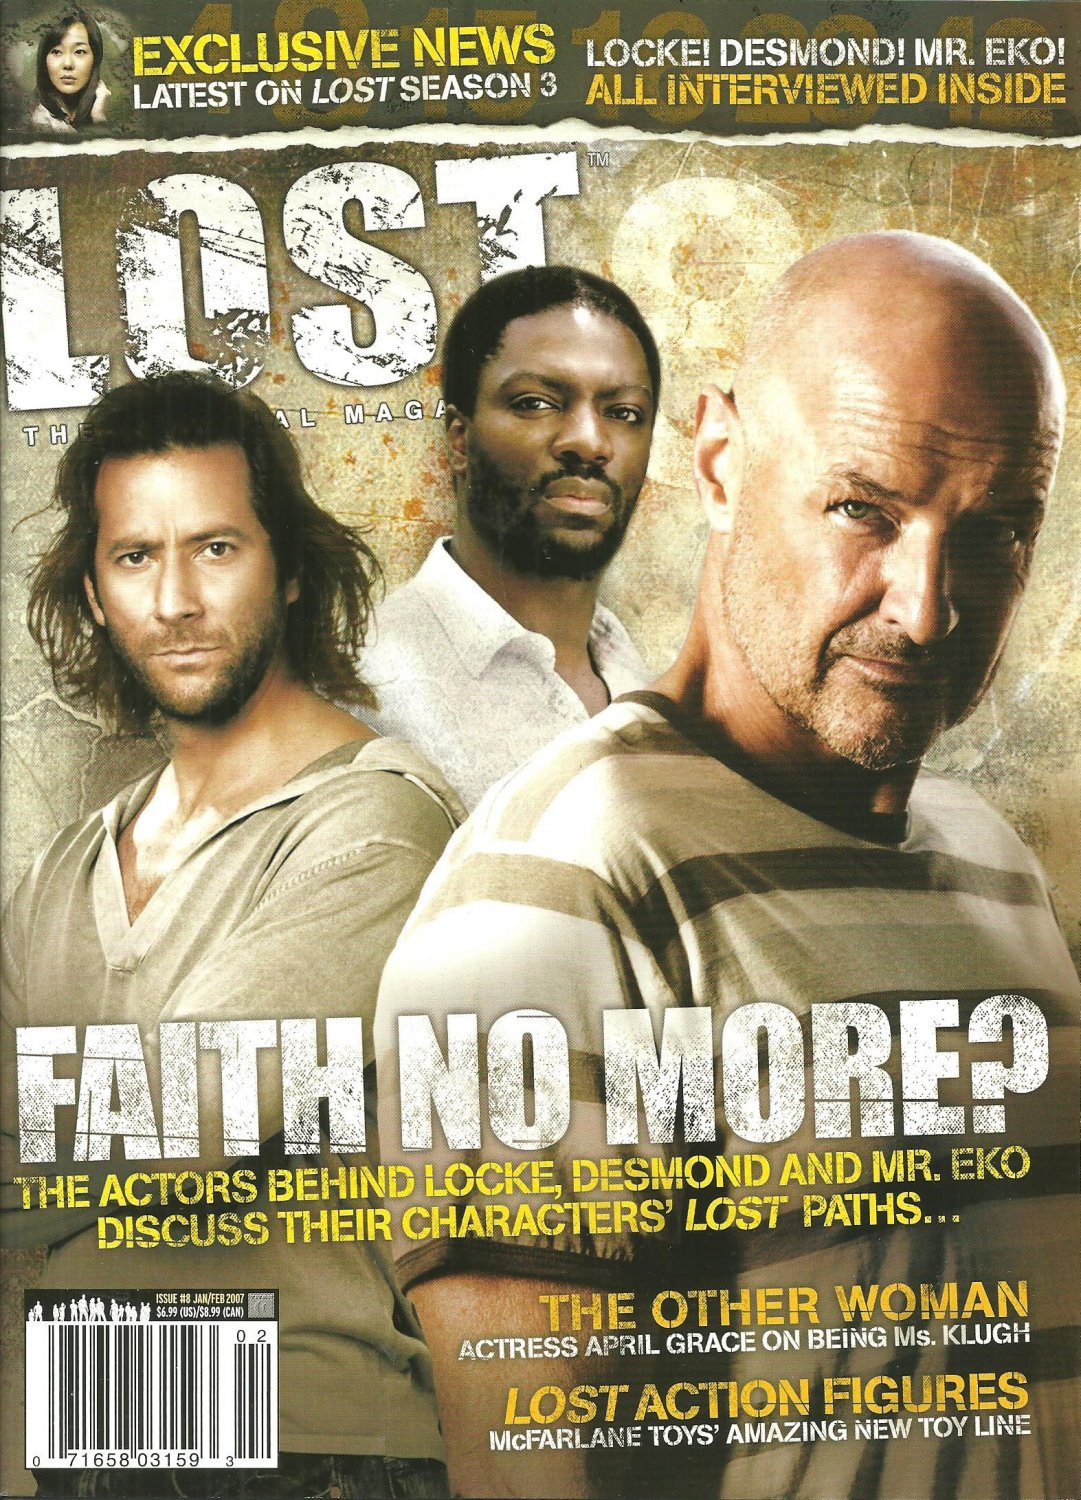 LOST THE OFFICIAL MAGAZINE Issue #8 January/February 2007 LOCKE Desmond MR. EKO